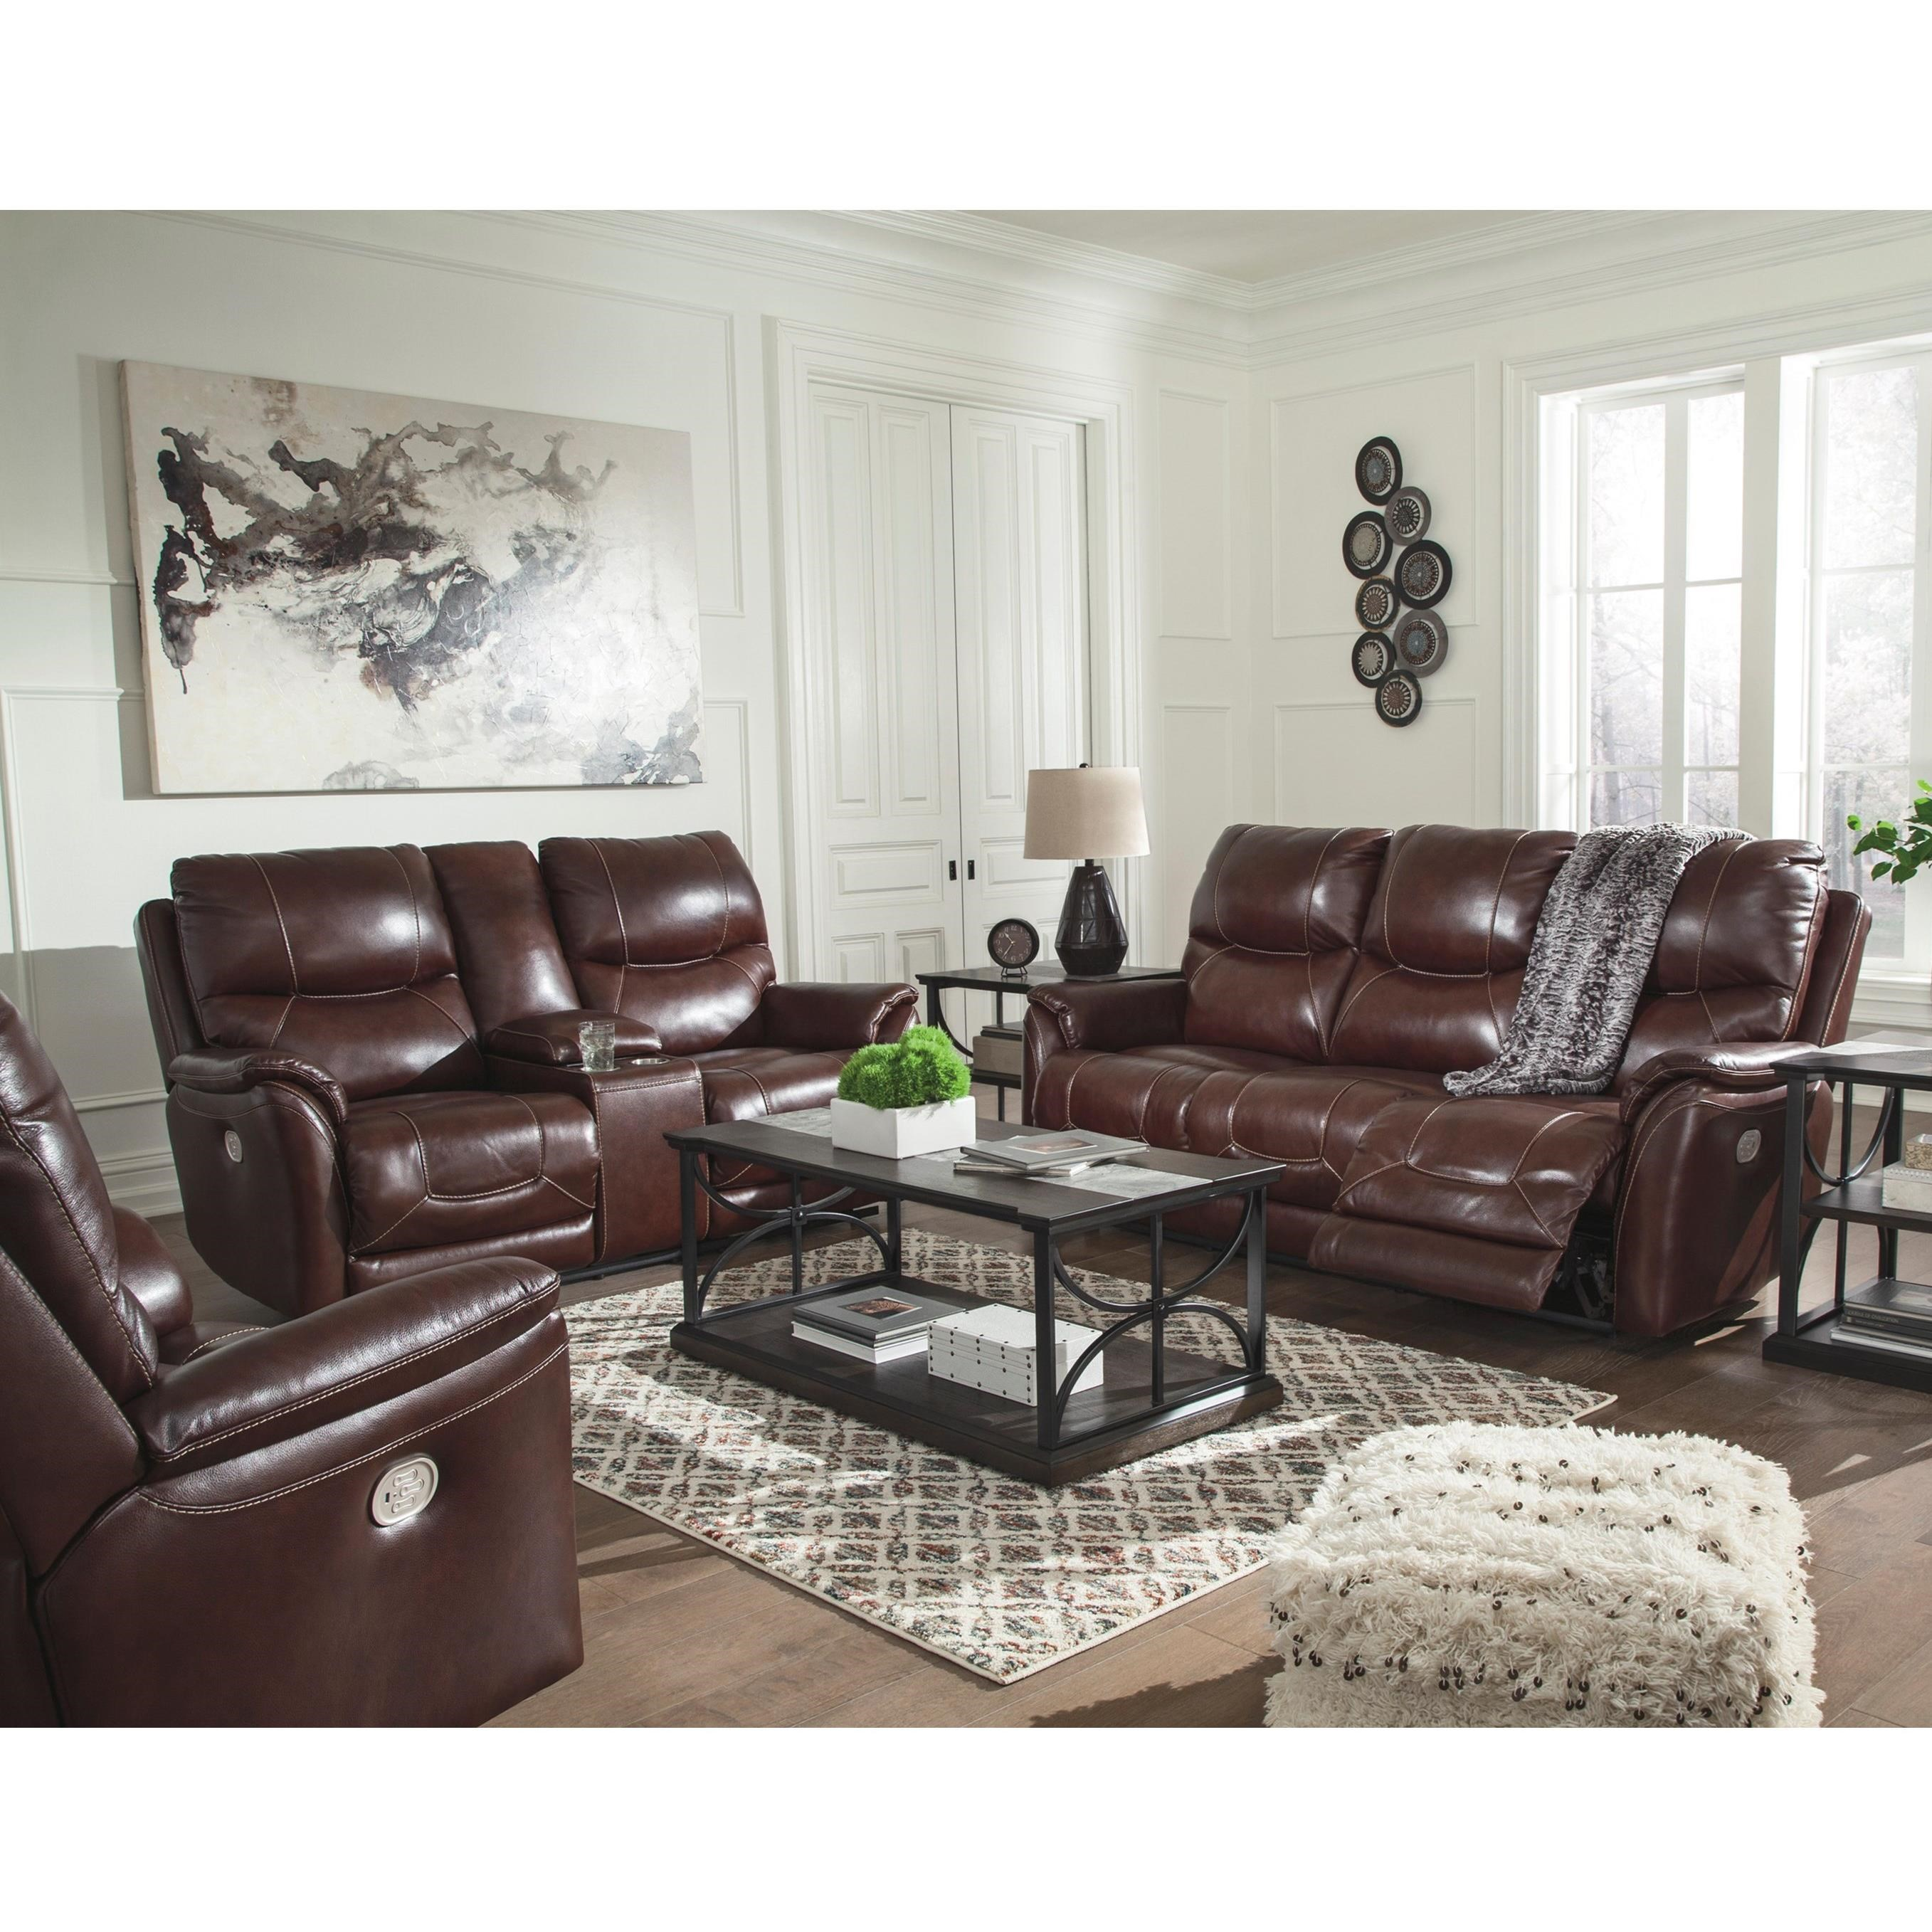 Dellington Power Reclining Living Room Group by Ashley (Signature Design) at Johnny Janosik